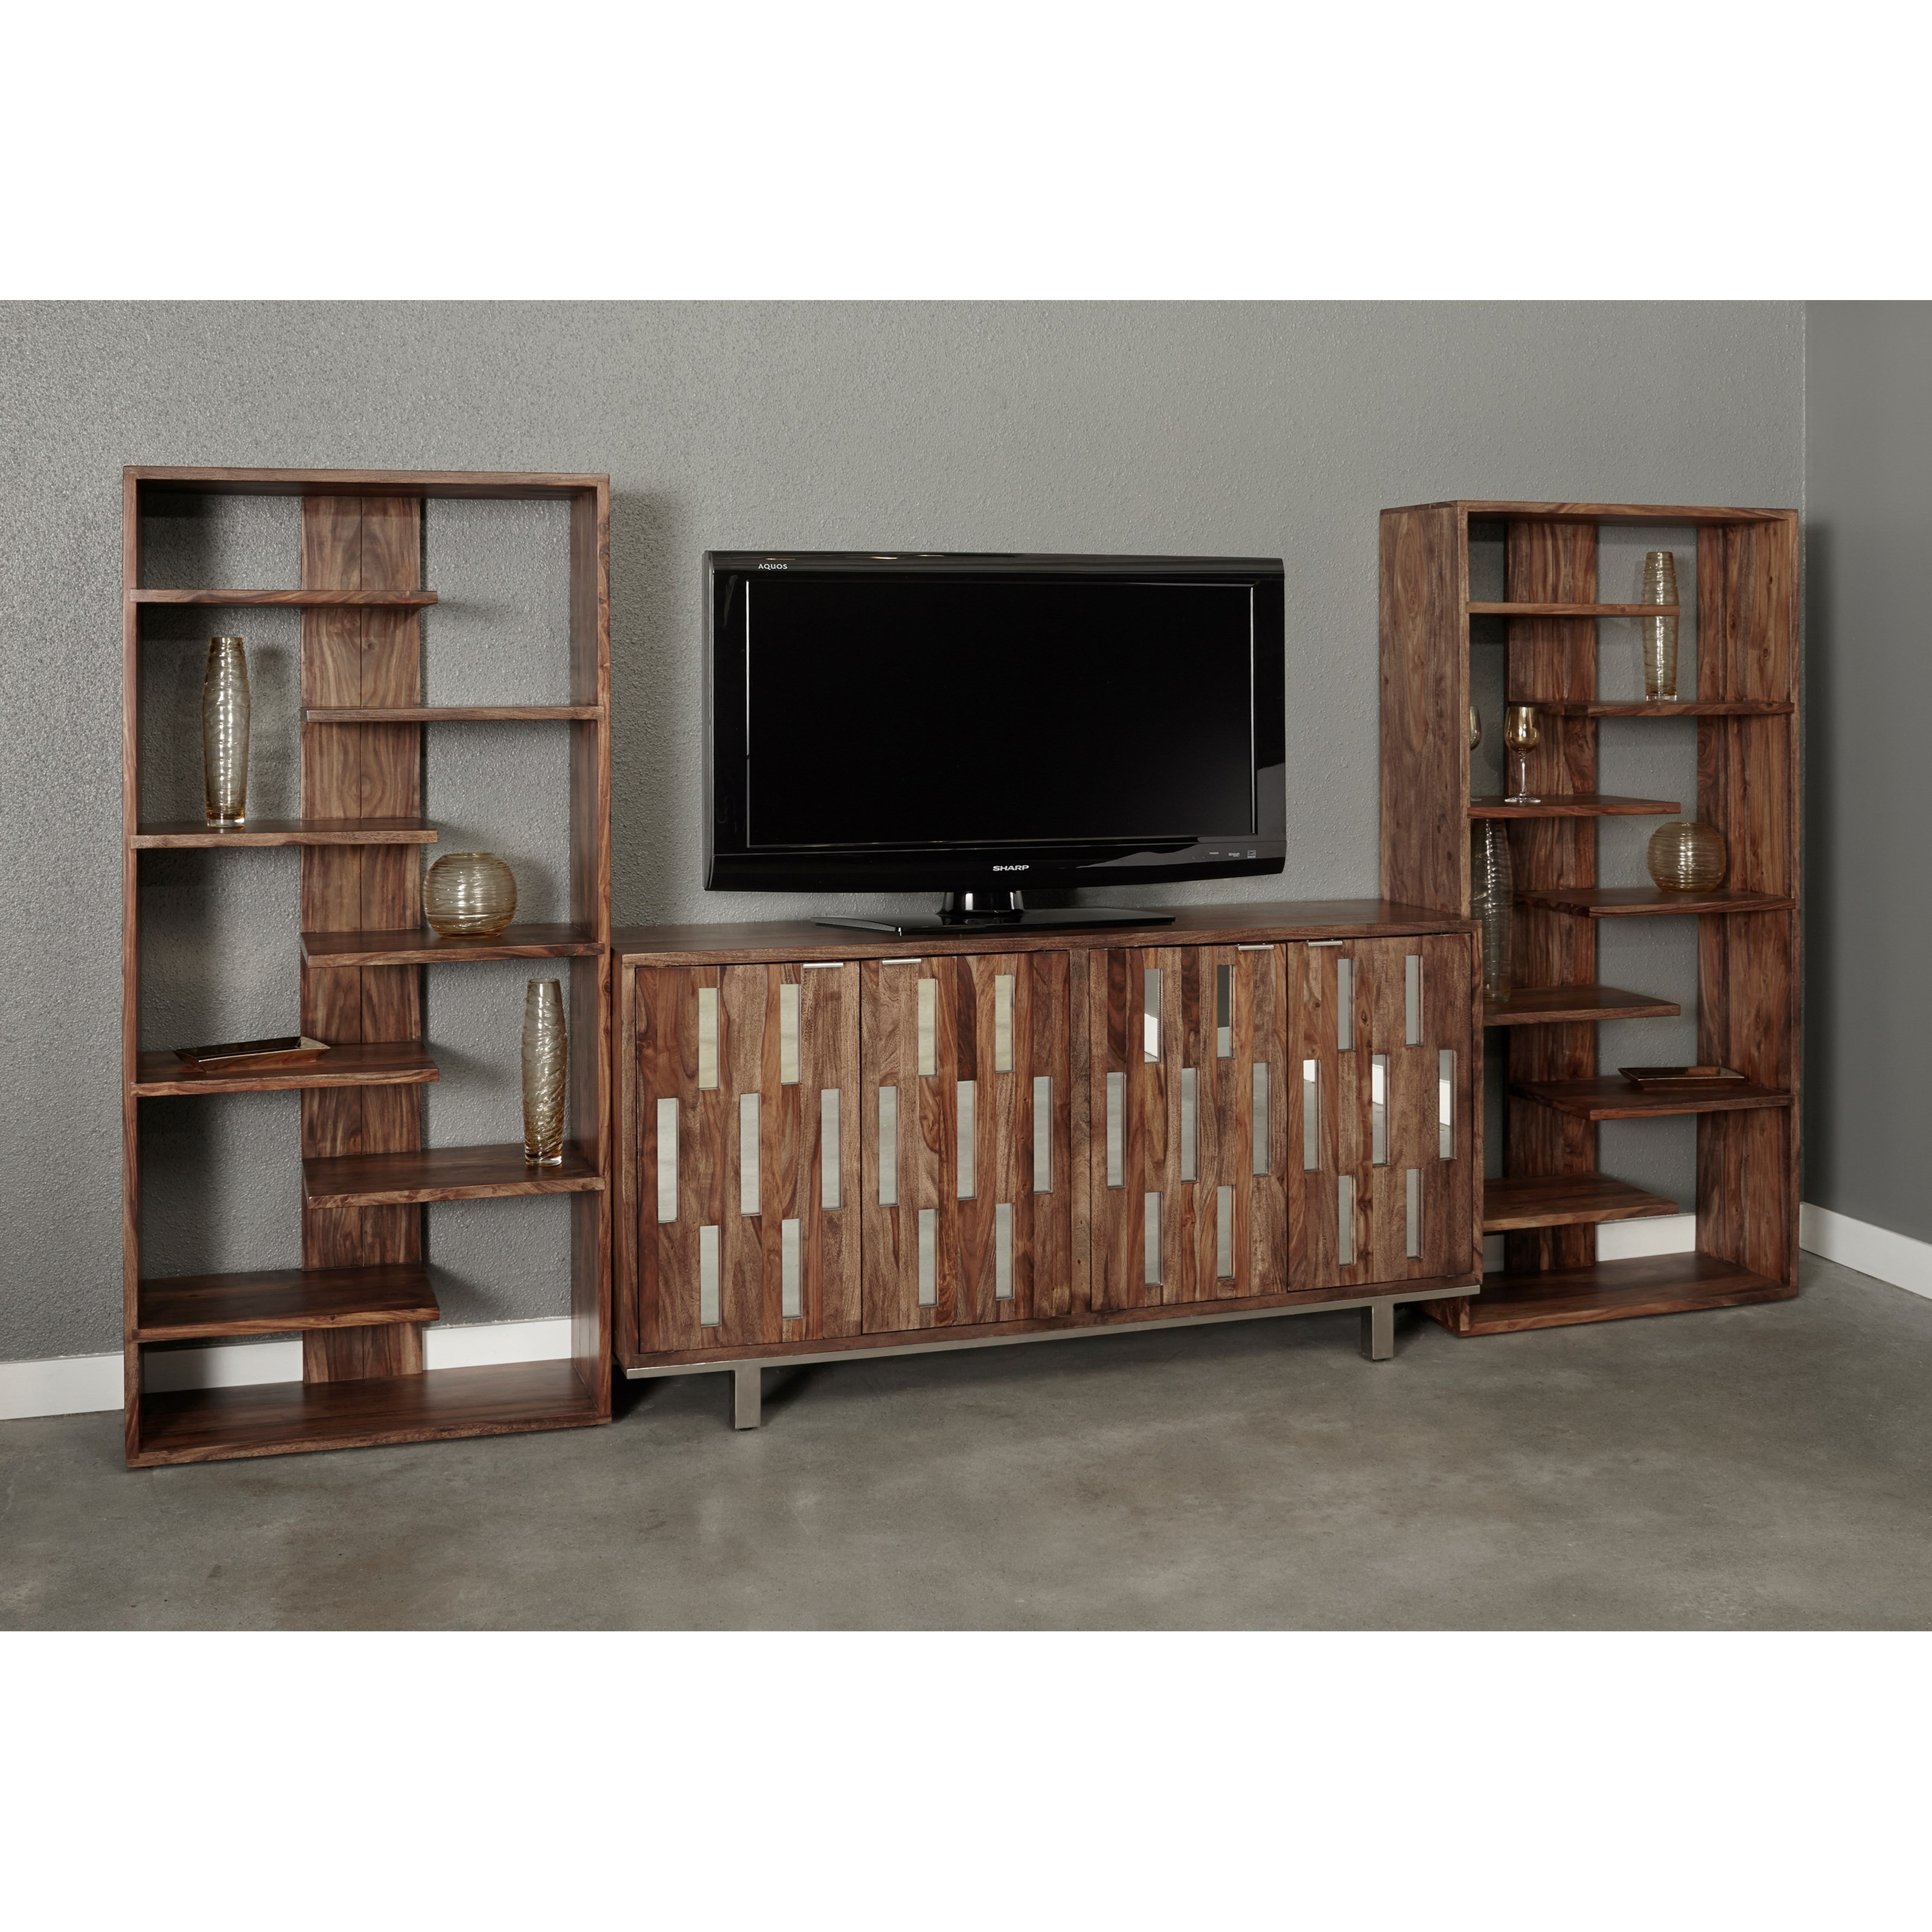 Gilliam TV Wall Unit by C2C at Walker's Furniture